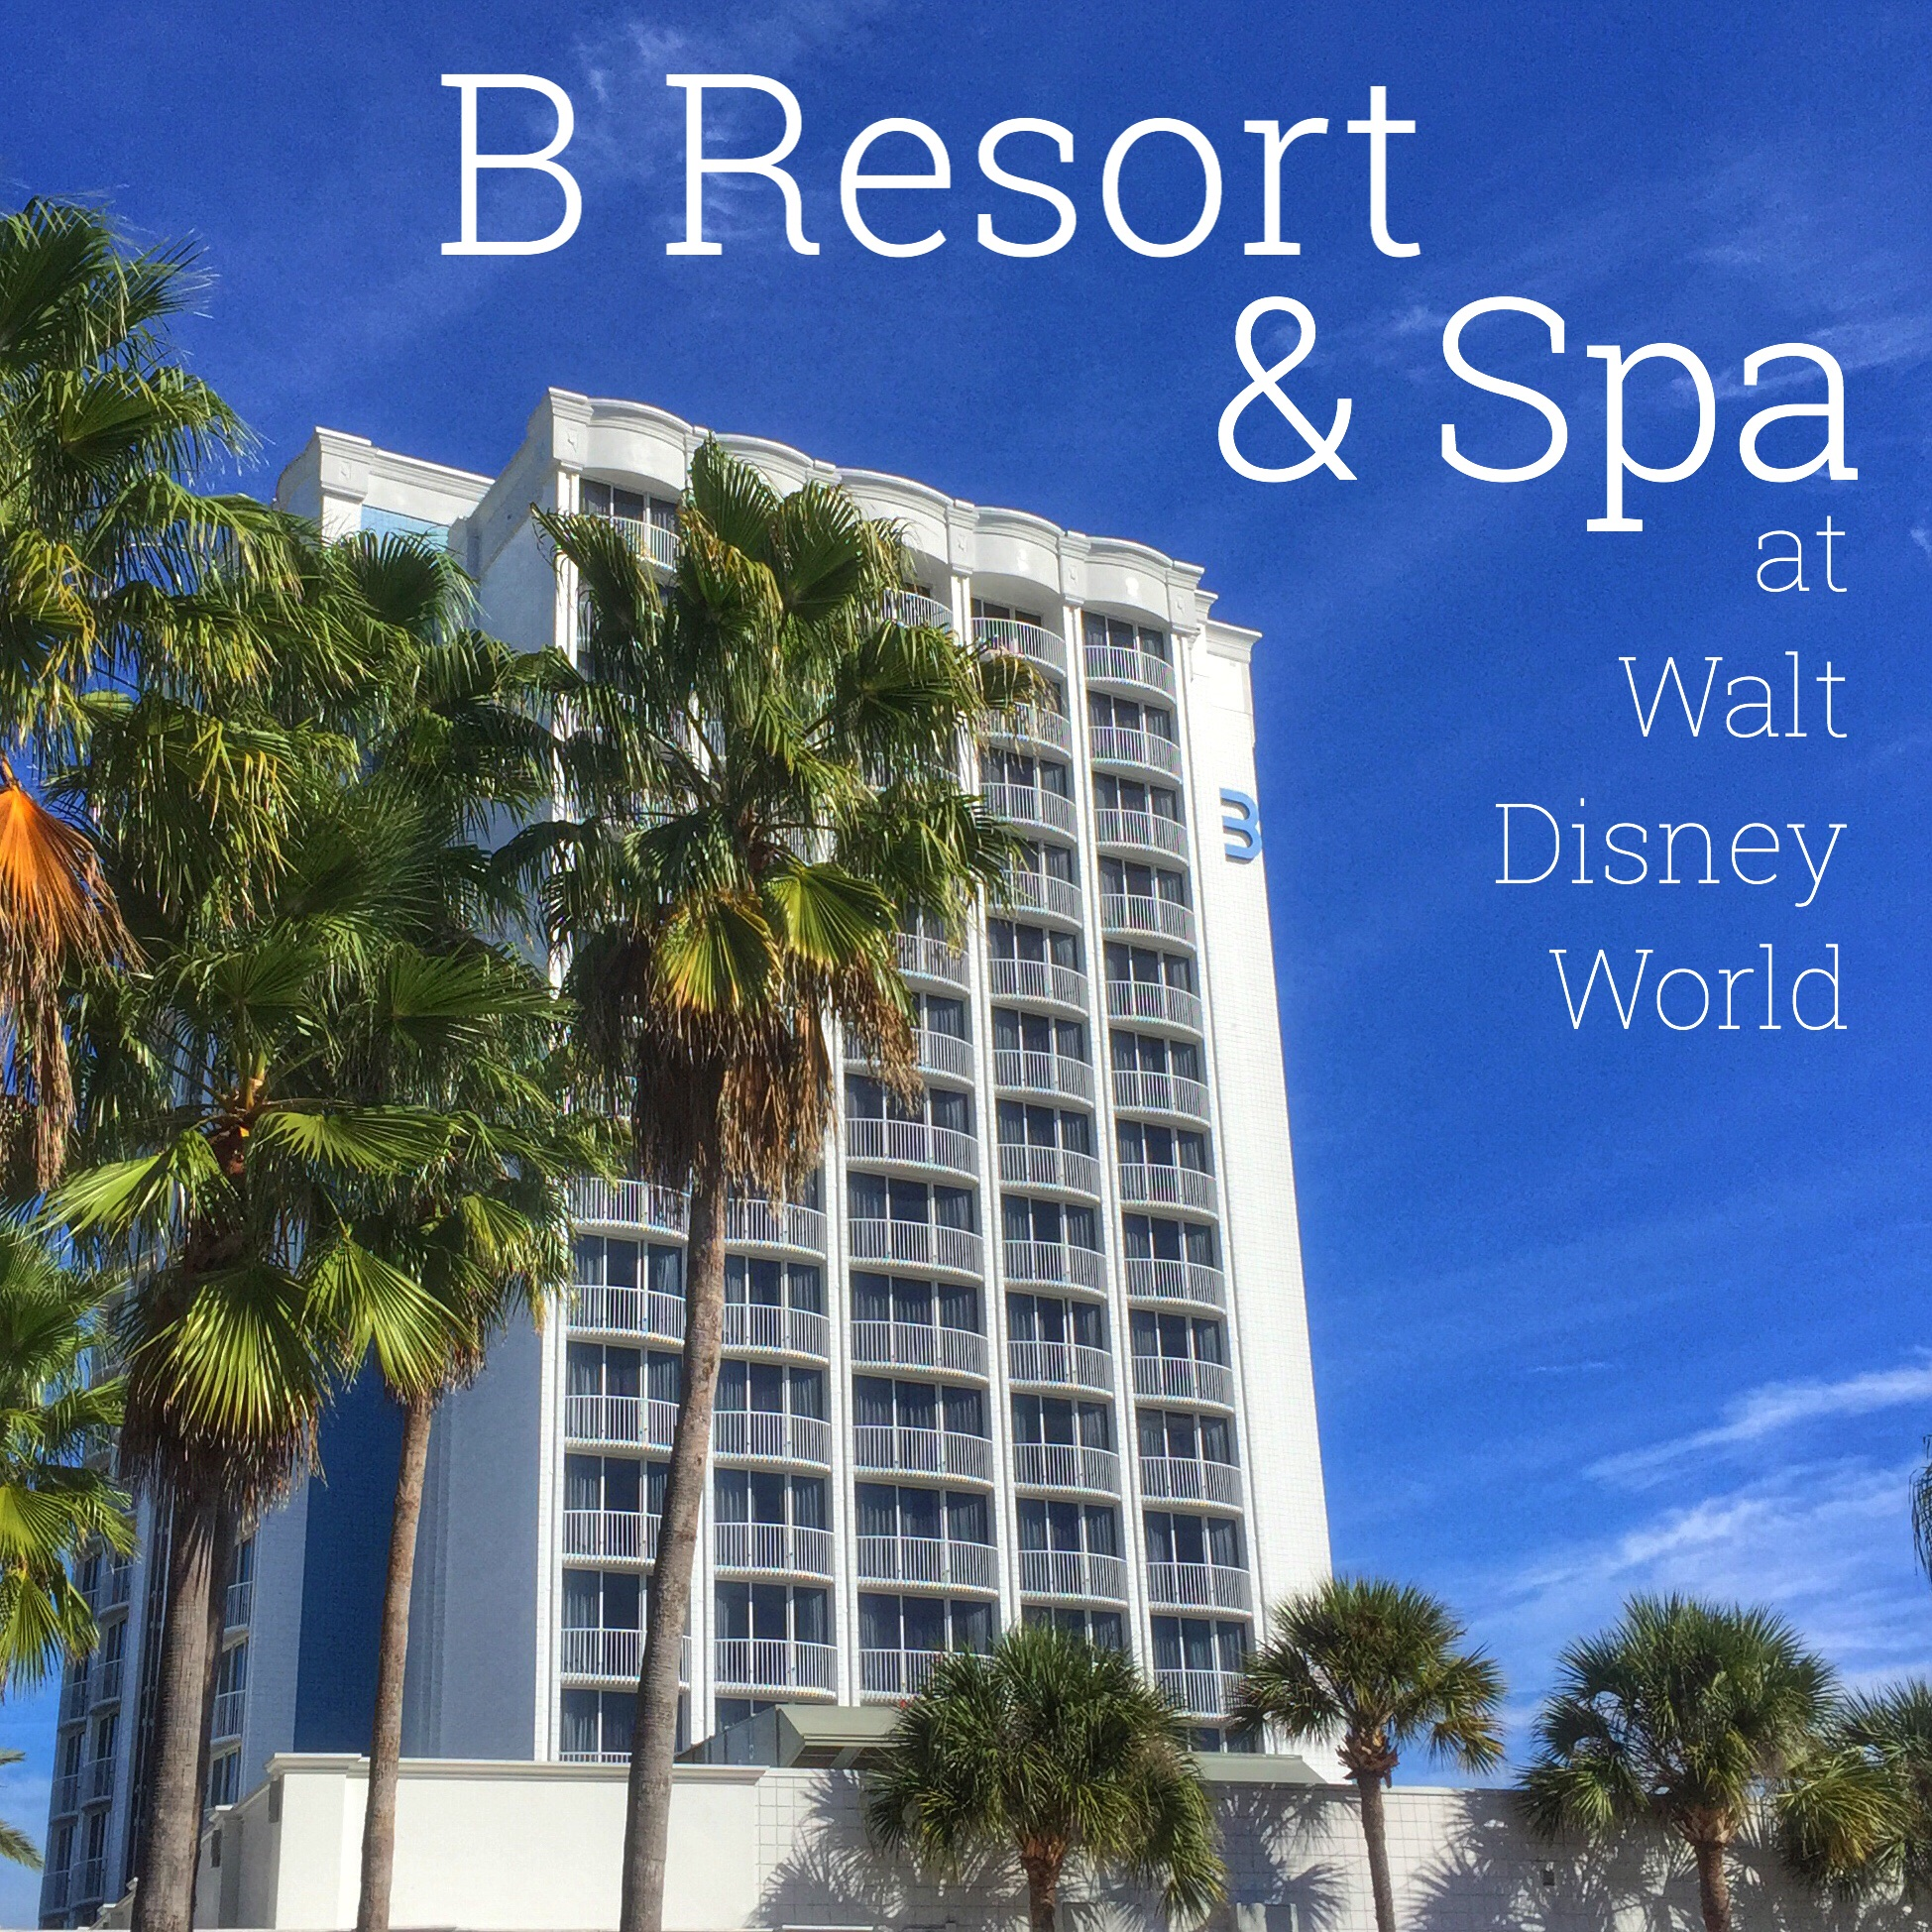 Why the b resort and spa orlando is the perfect hotel for for B b spa